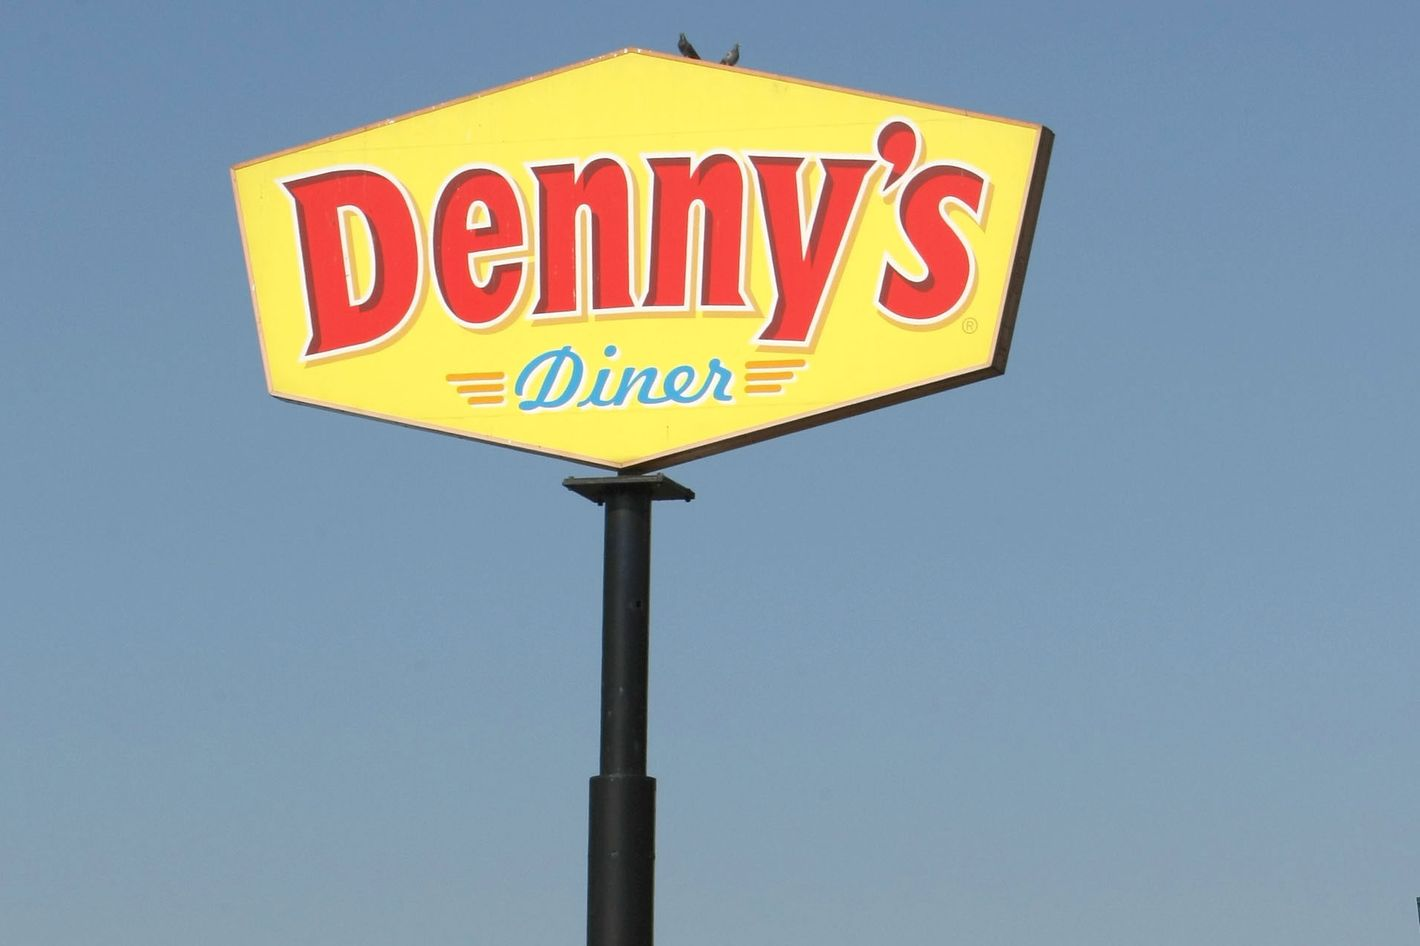 It won't even look like this, swears Denny's.